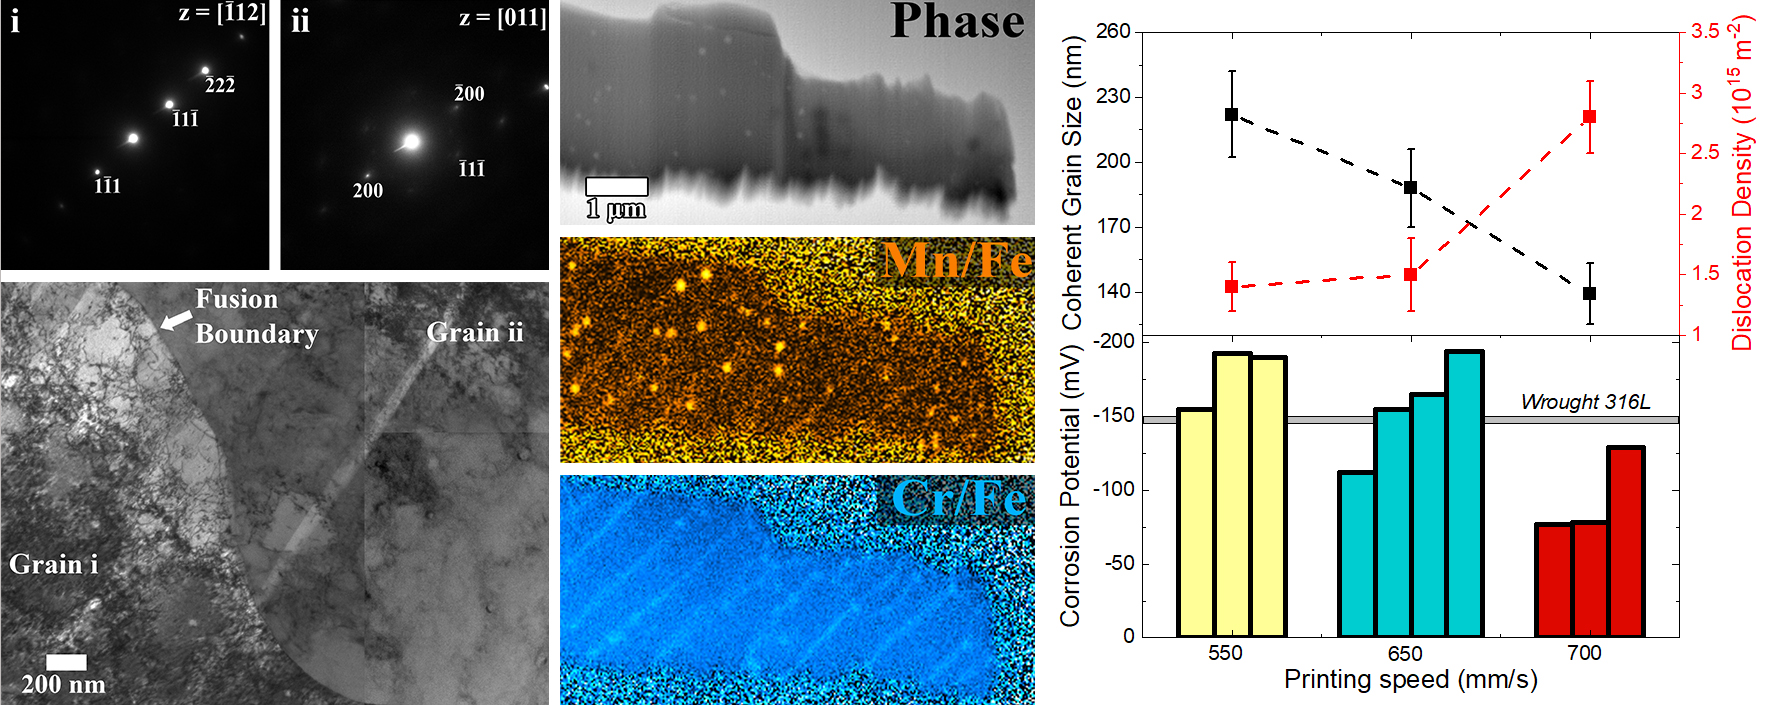 Microstructural Origins of Corrosion Behavior in AM-316L Stainless Steel